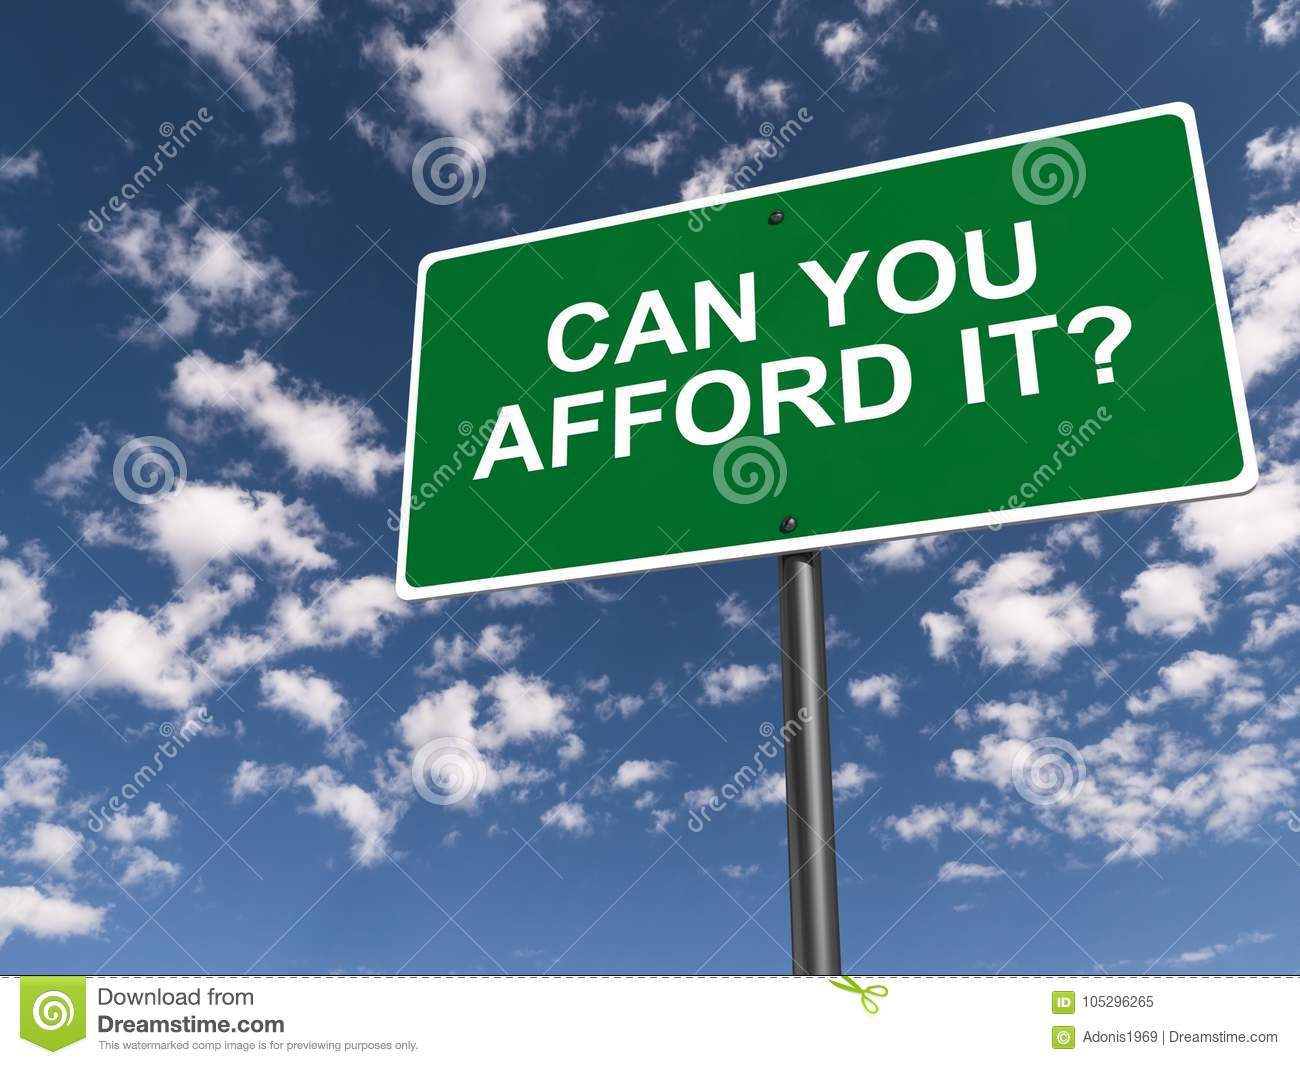 Can you afford it sign